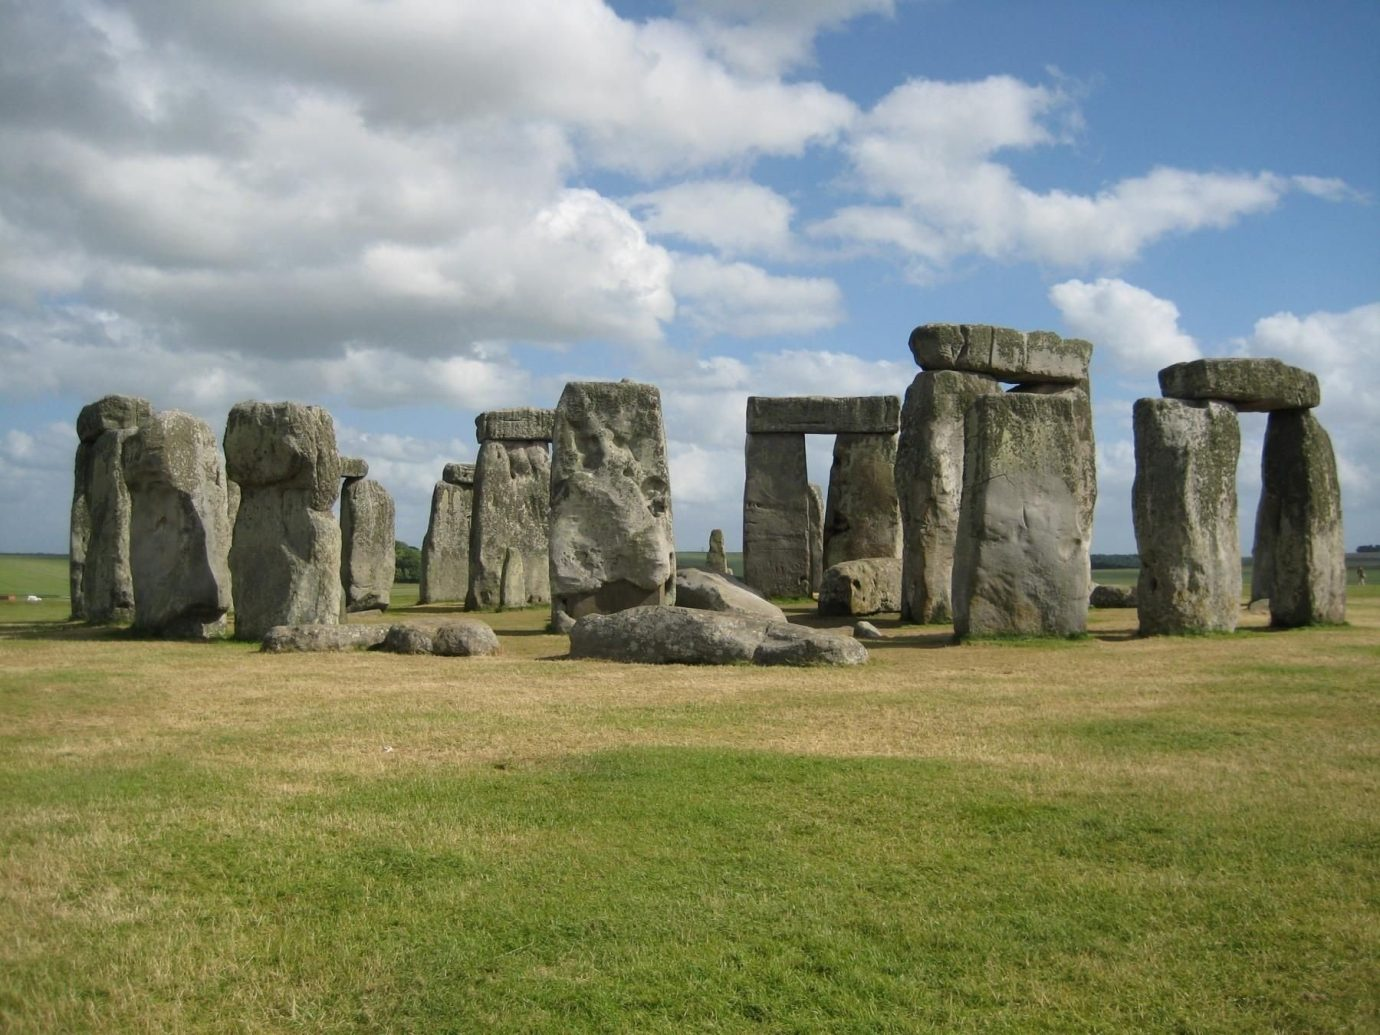 Road Trips Trip Ideas grass building sky outdoor megalith Ruins rock structure archaeological site ancient history stone monolith monument